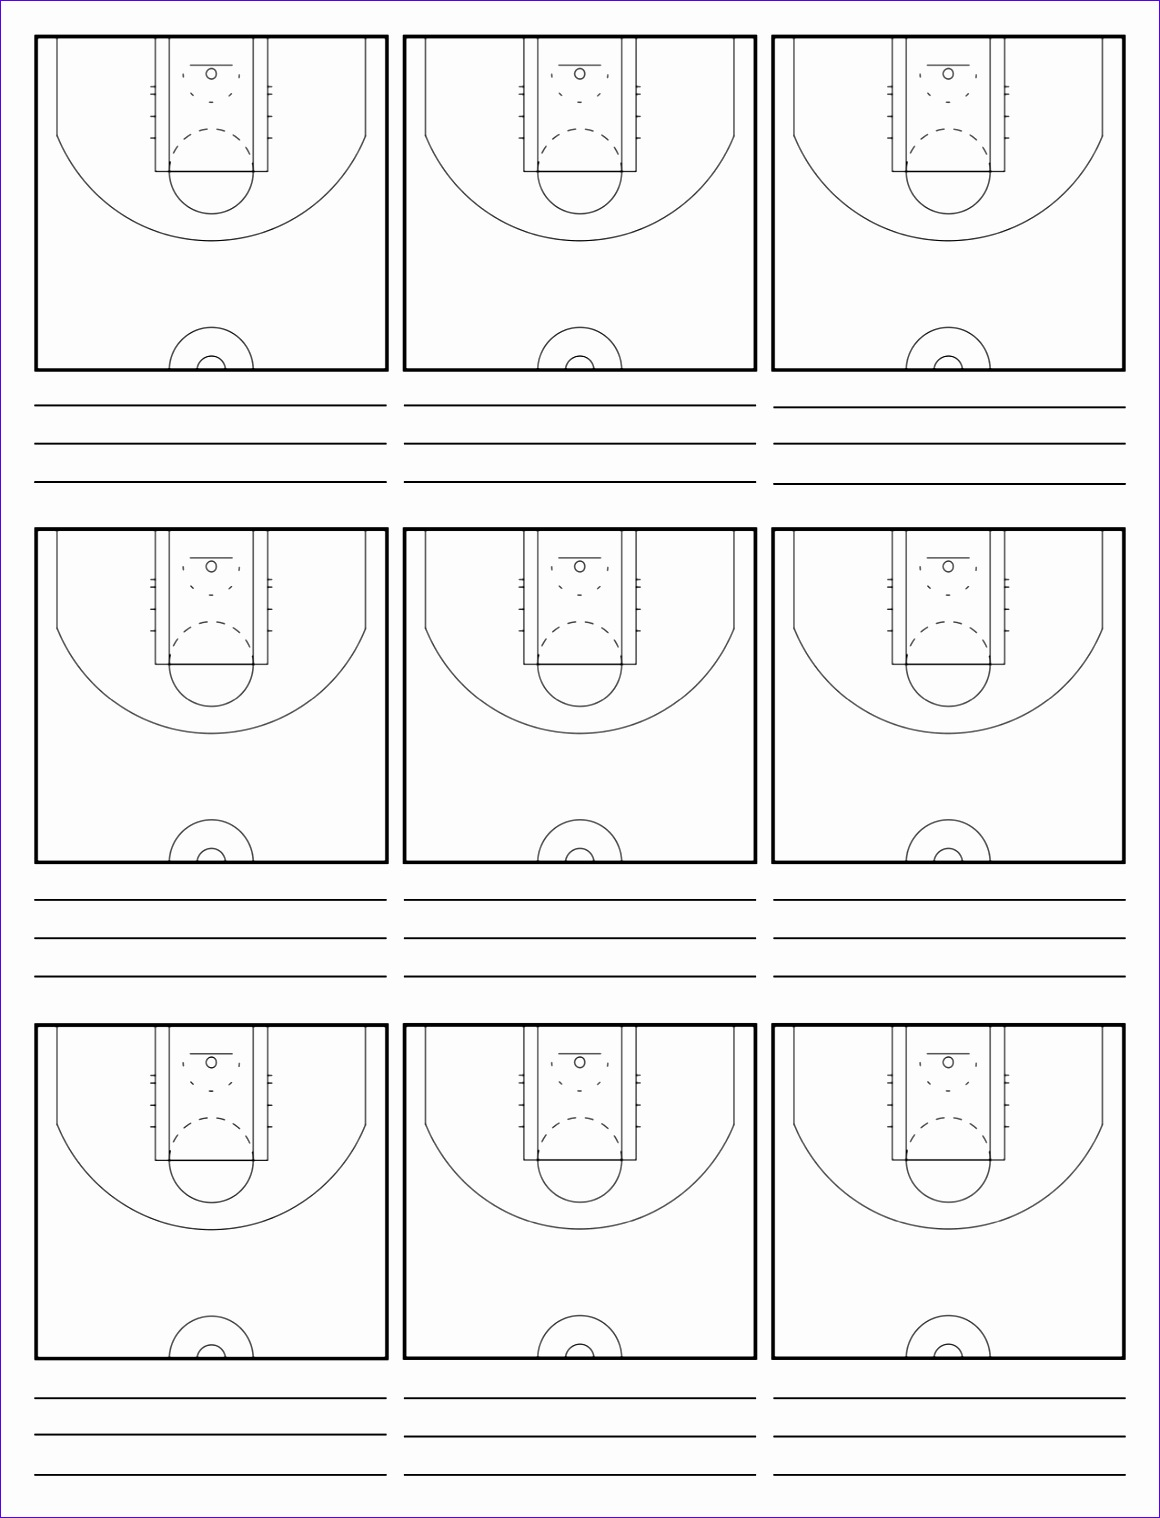 Basketball Stat Sheet Template Excel N6viq Lovely Basketball Play Sheets Vertola